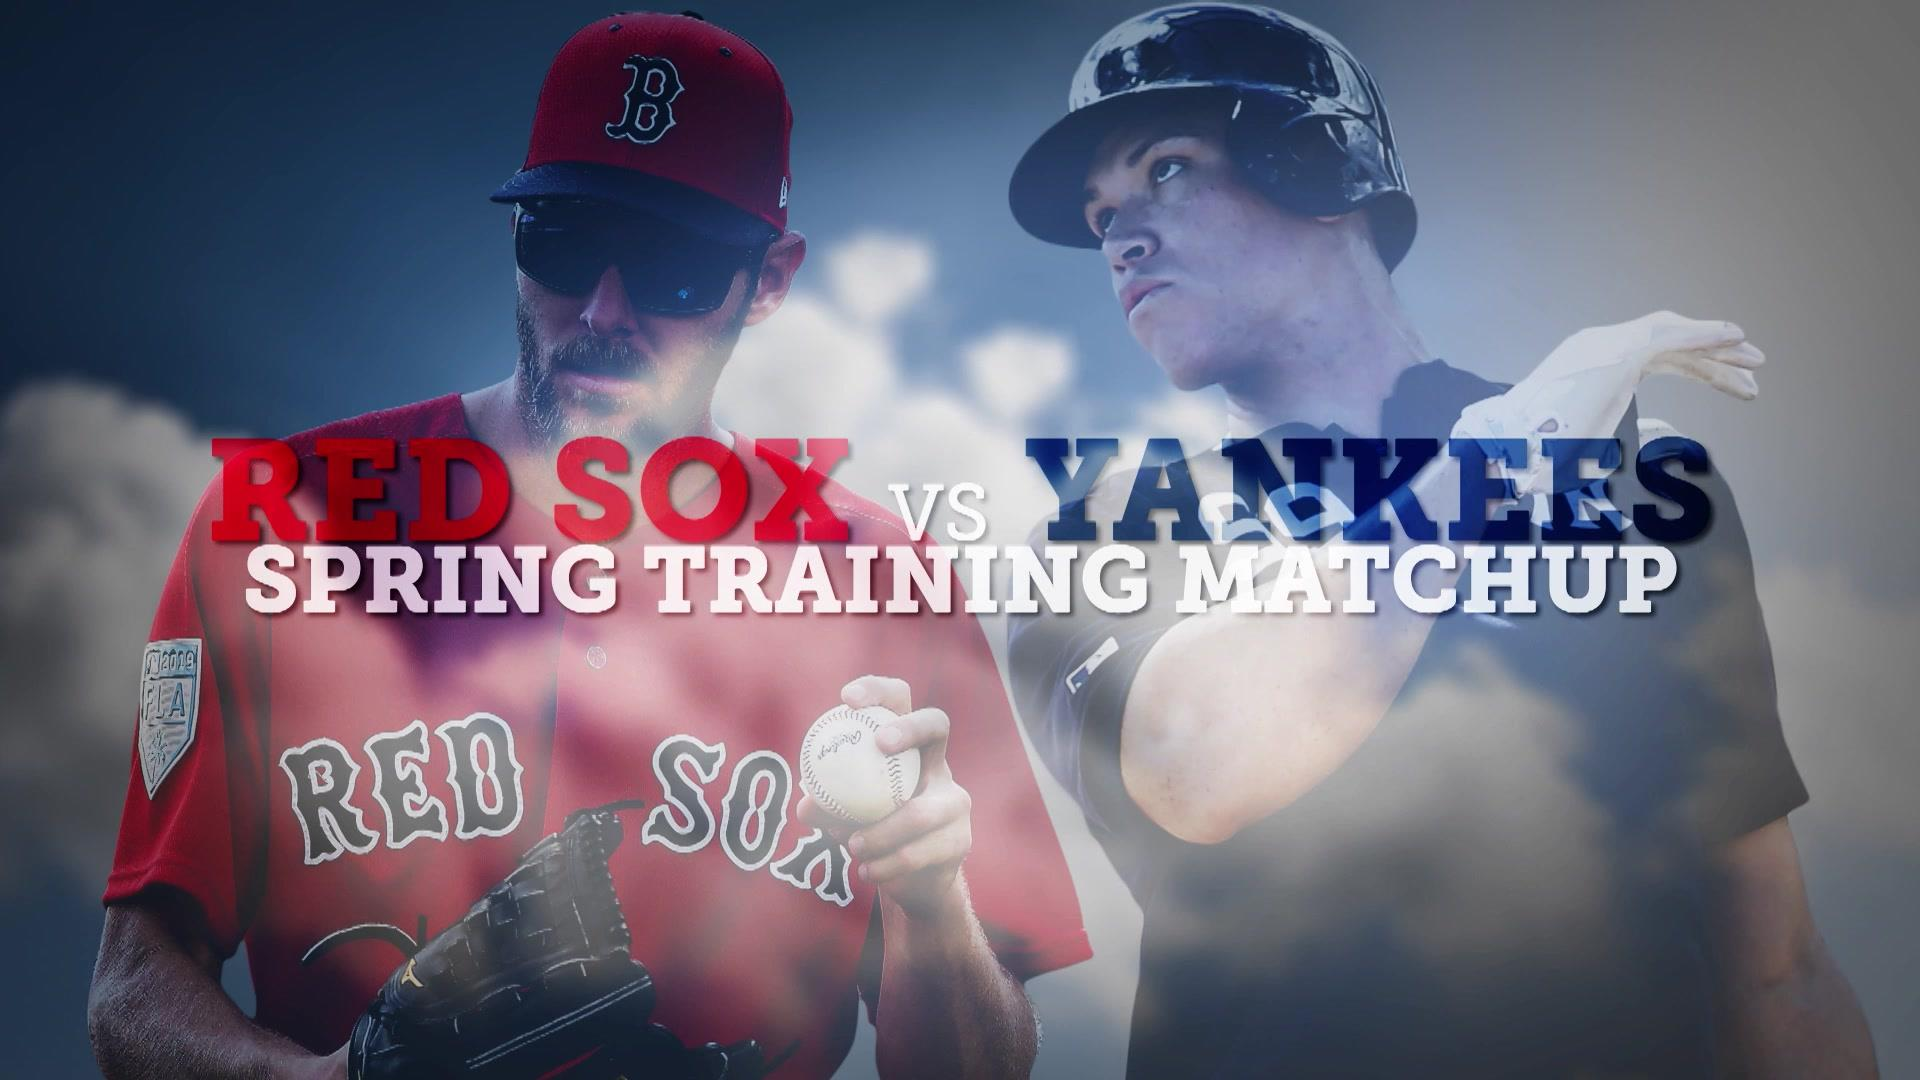 A Recap of the Offseason Moves for the Red Sox and Yankees